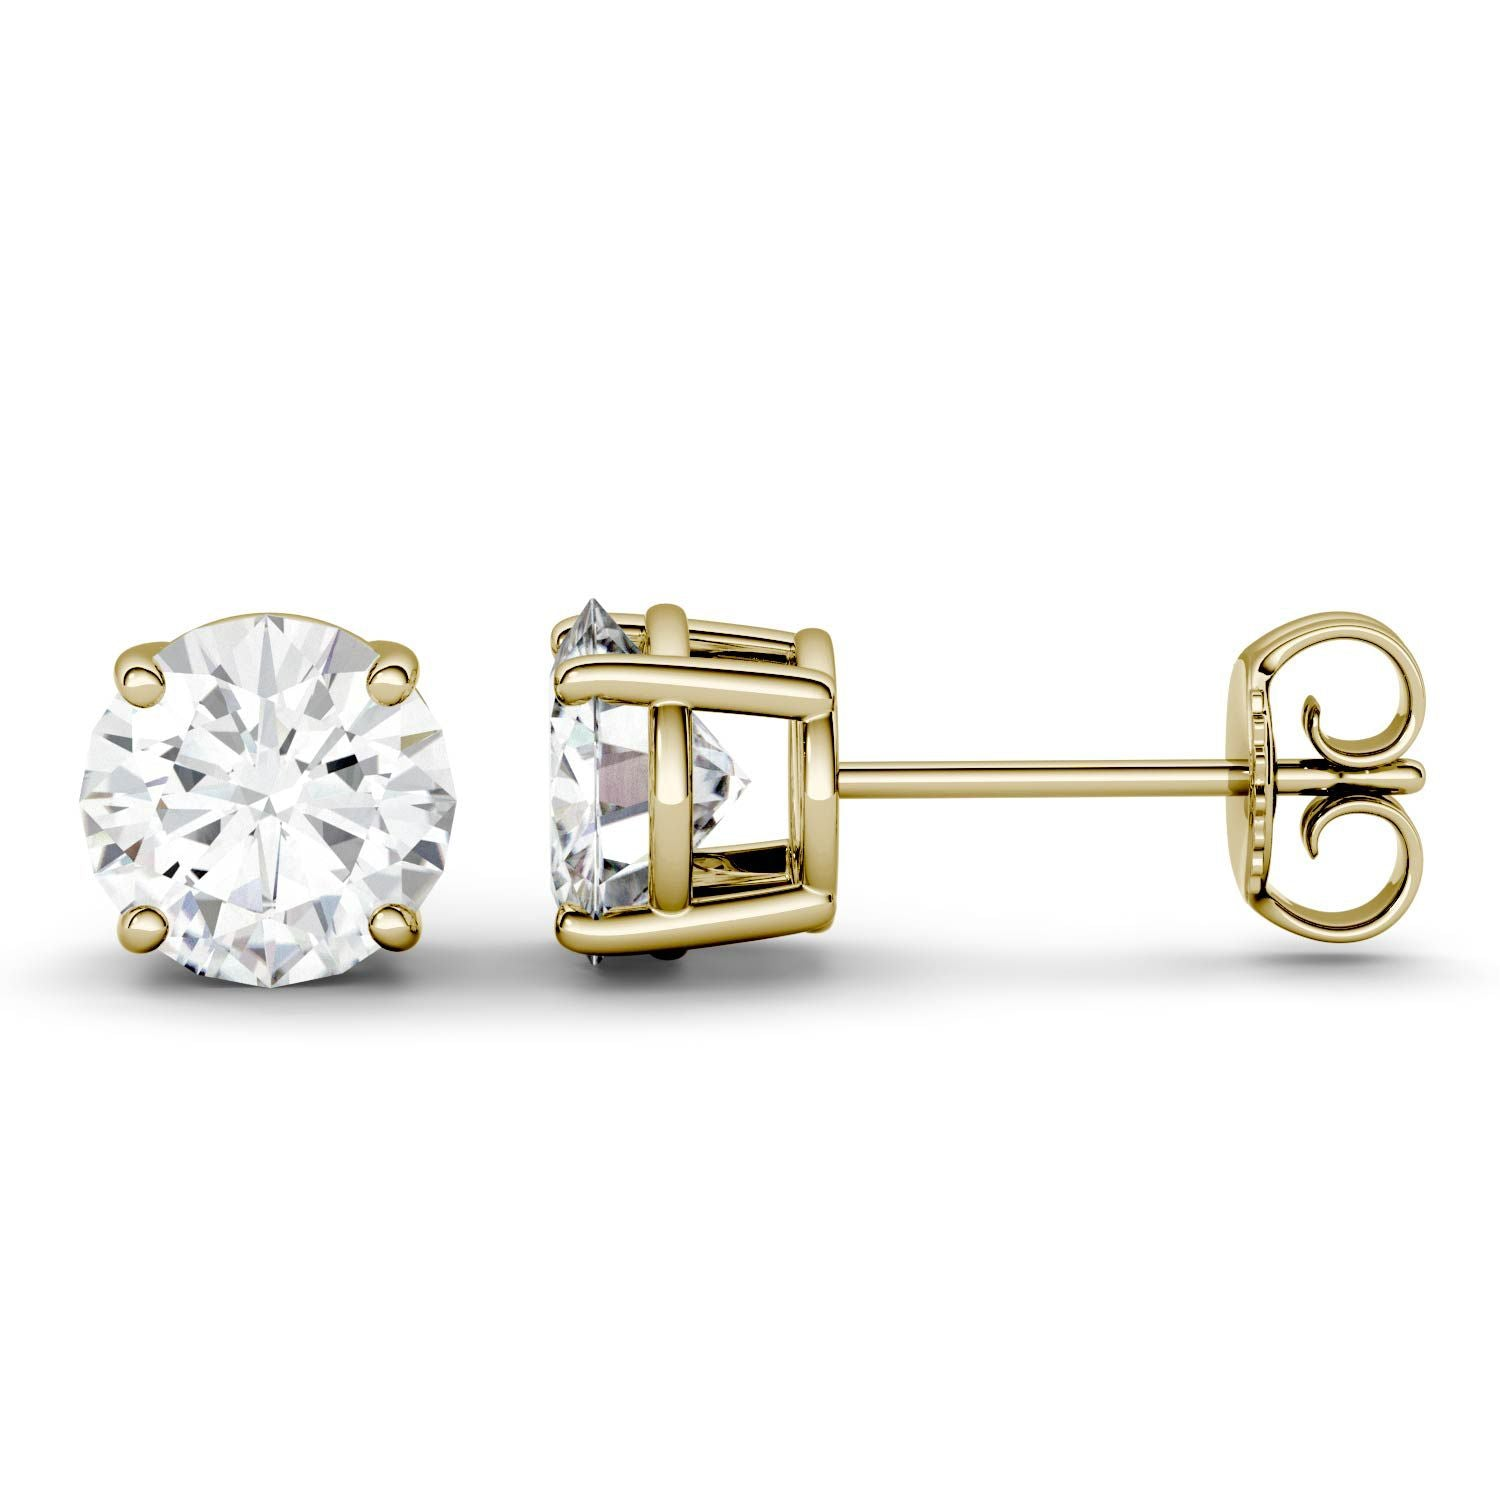 3 Carat TW Charles & Colvard Moissanite Stud Earrings in Yellow Gold-612704 - Jewelry by Johan